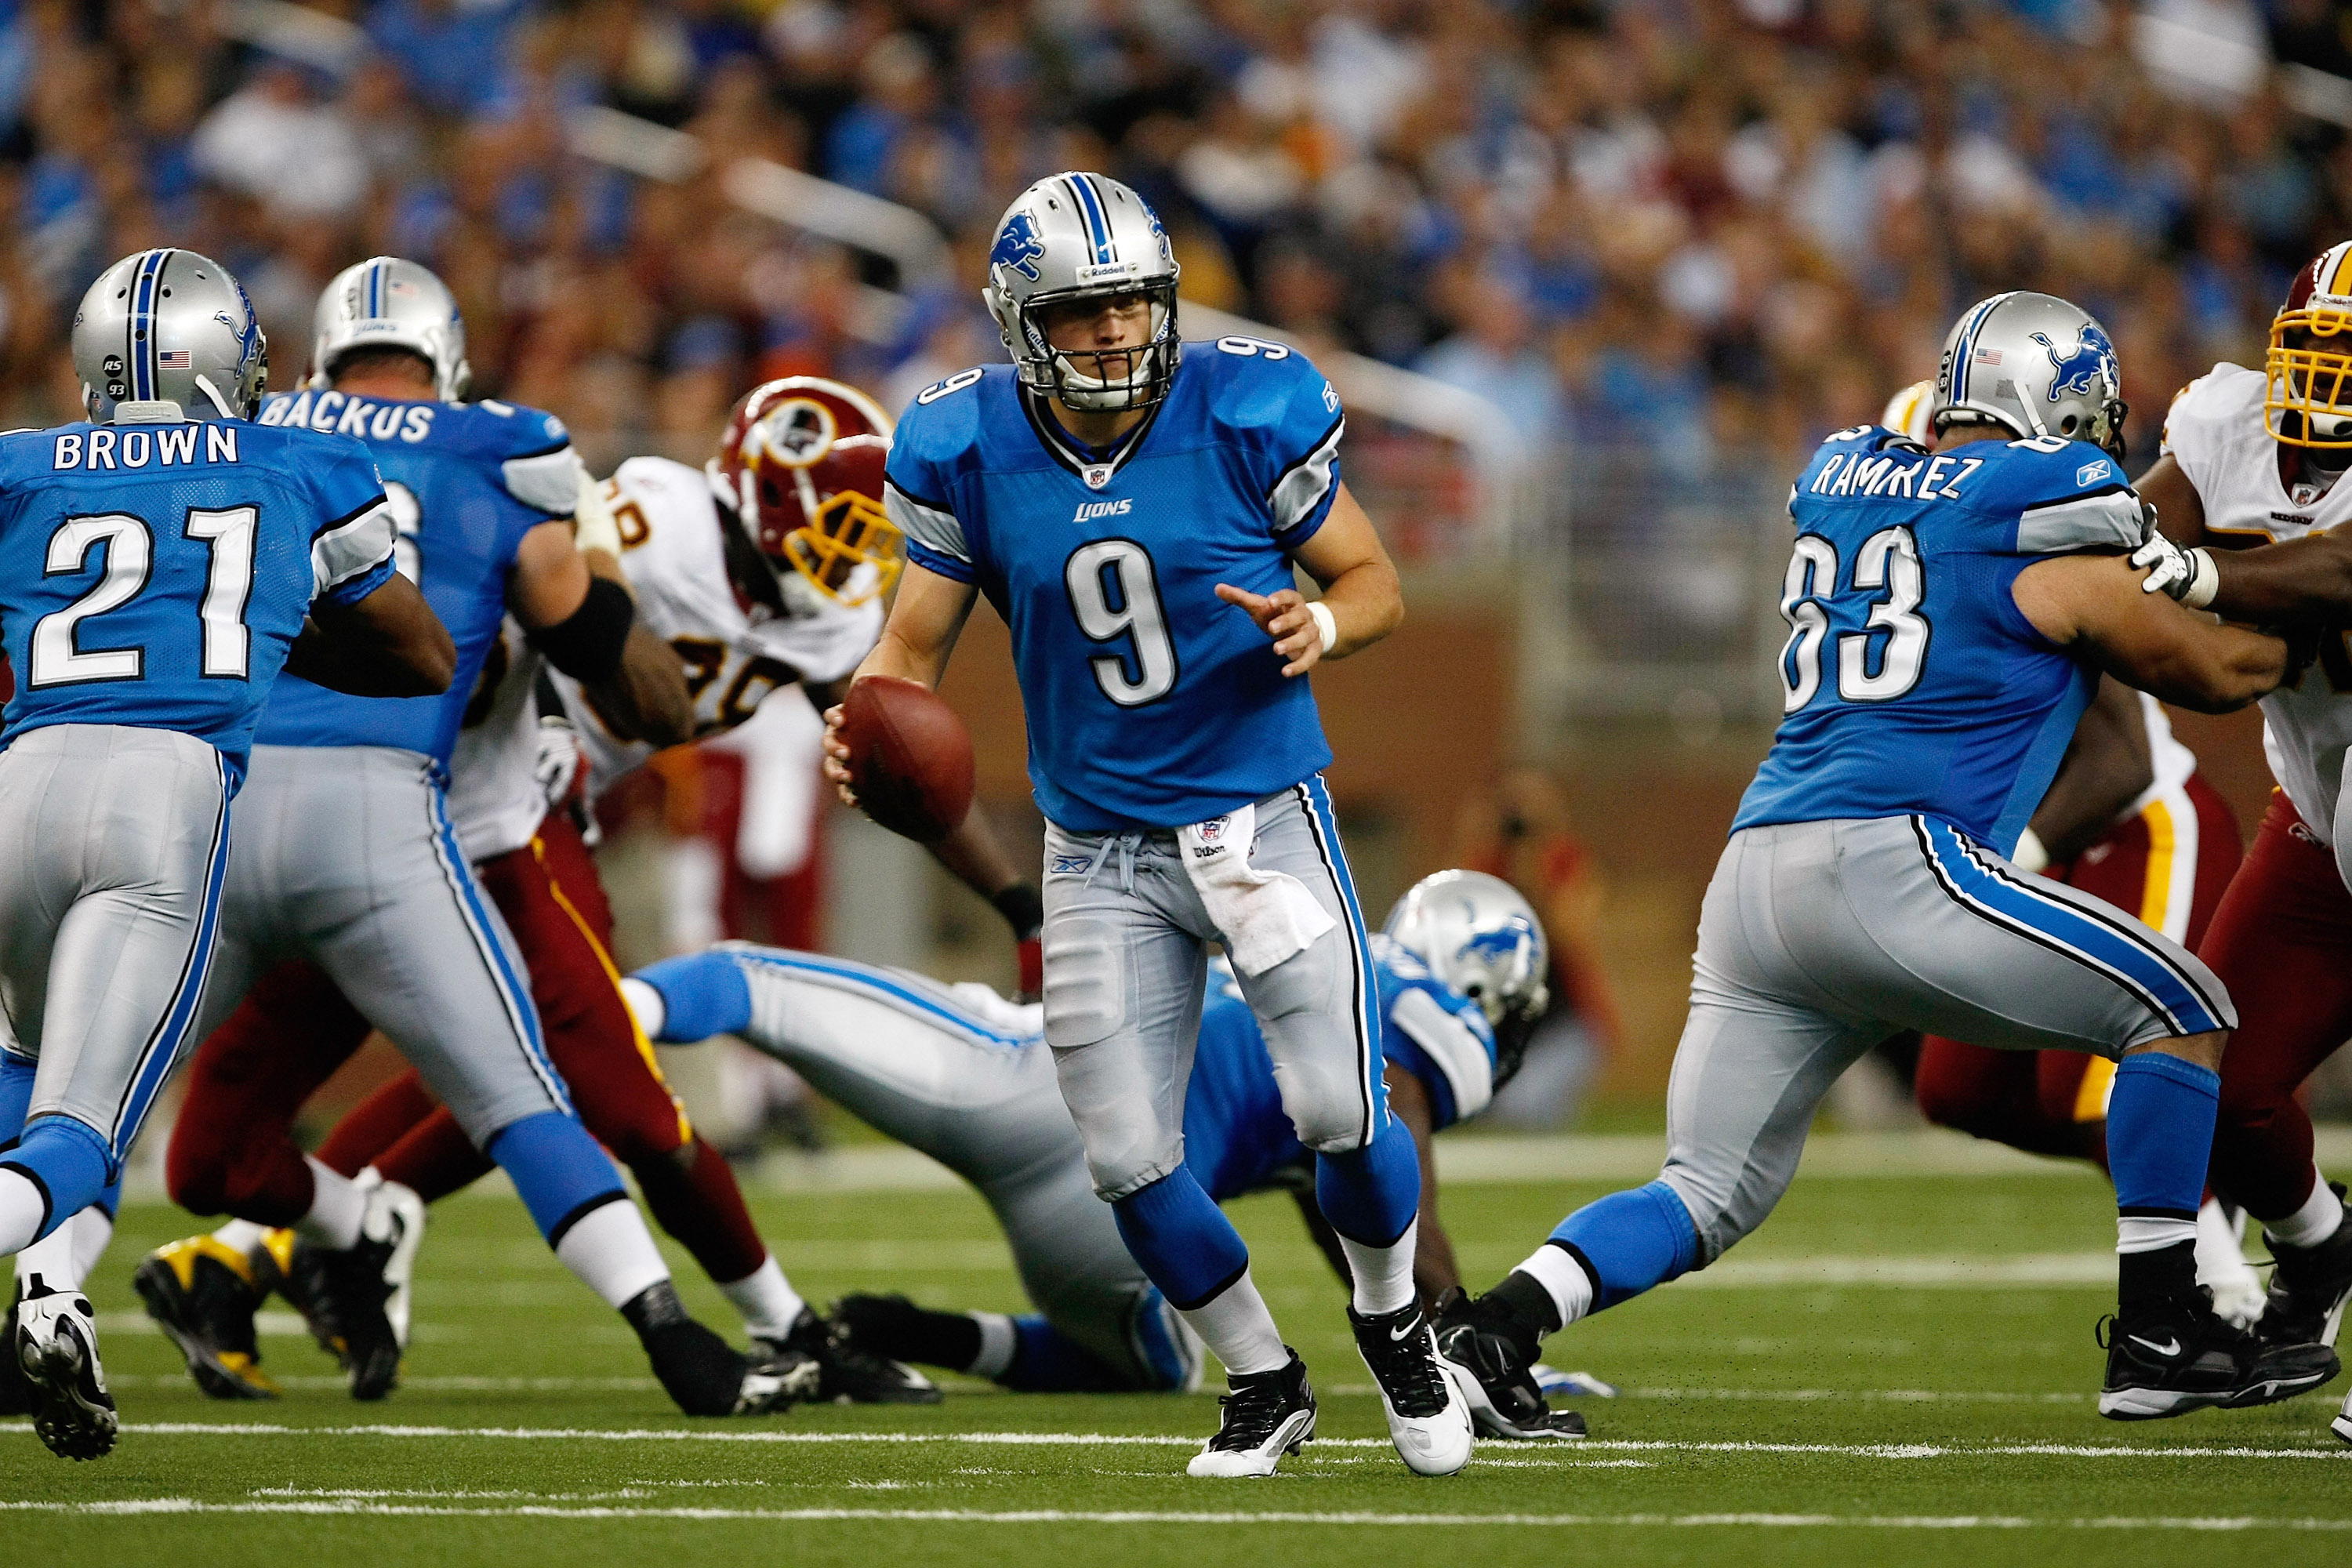 DETROIT, MI - SEPTEMBER 27: Quarterback Matthew Stafford #9 of the Detroit Lions runs with the football against the Washington Redskins at Ford Field on September 27, 2009 in Detroit, Michigan. The Lions defeated the Redskins 19-14. (Photo by Scott Boehm/